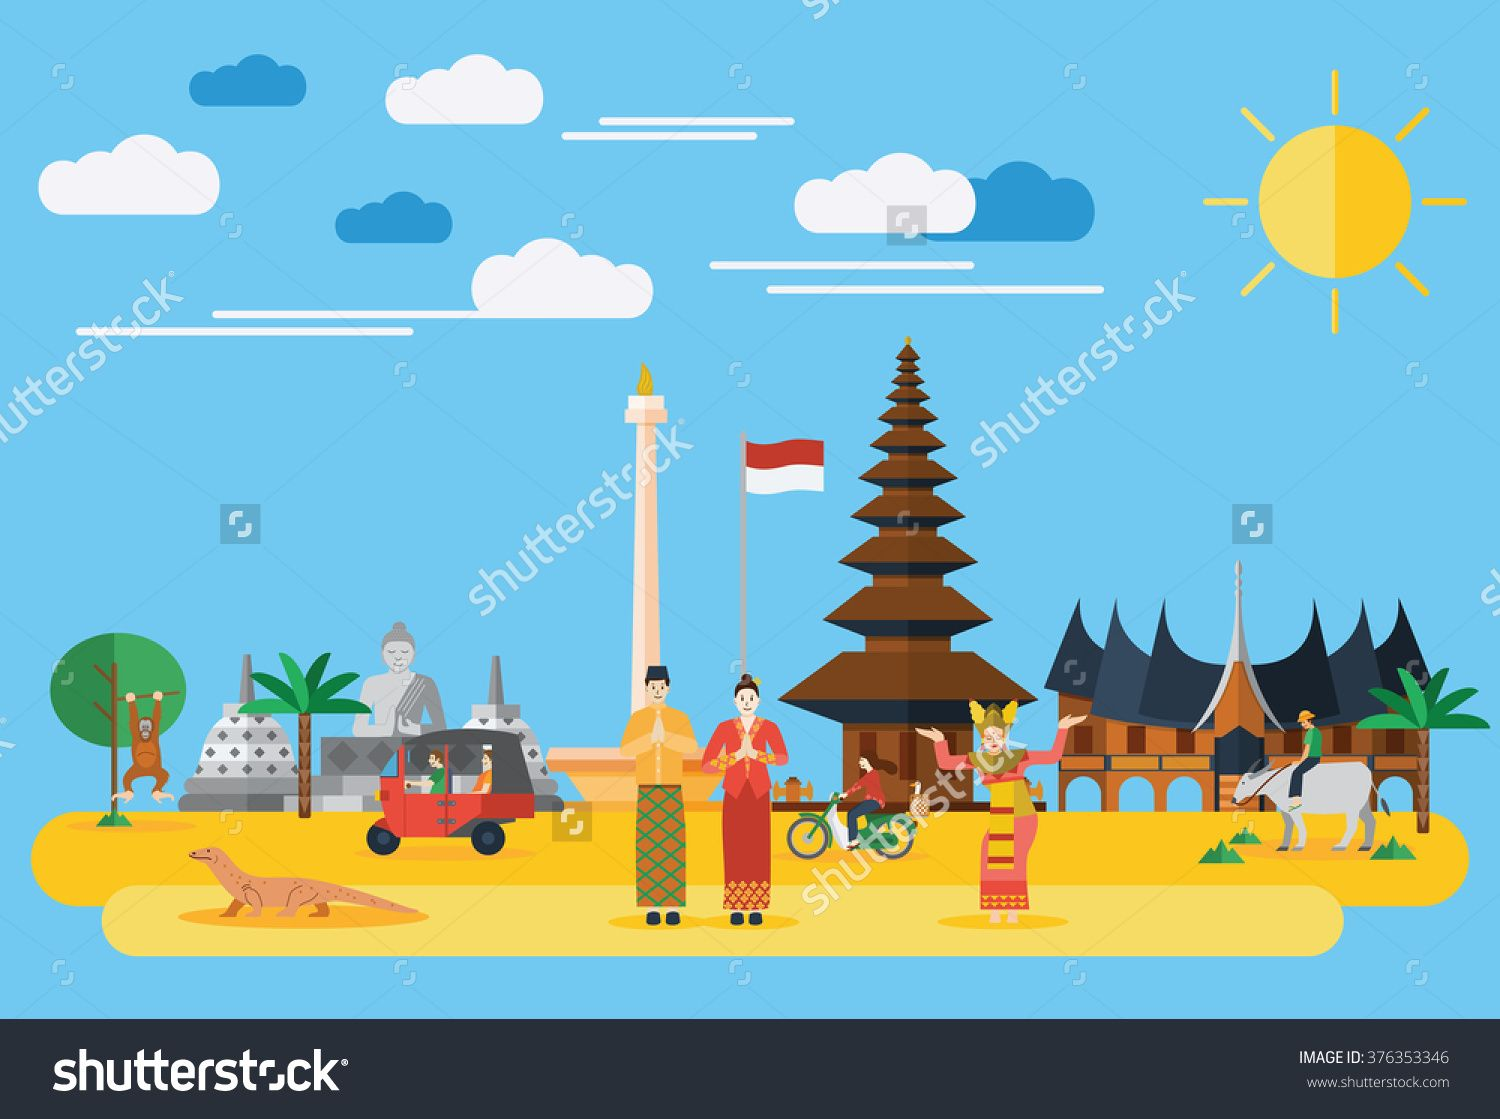 flat design illustration of indonesia icons and landmarks flat design illustration illustration flat design flat design illustration illustration